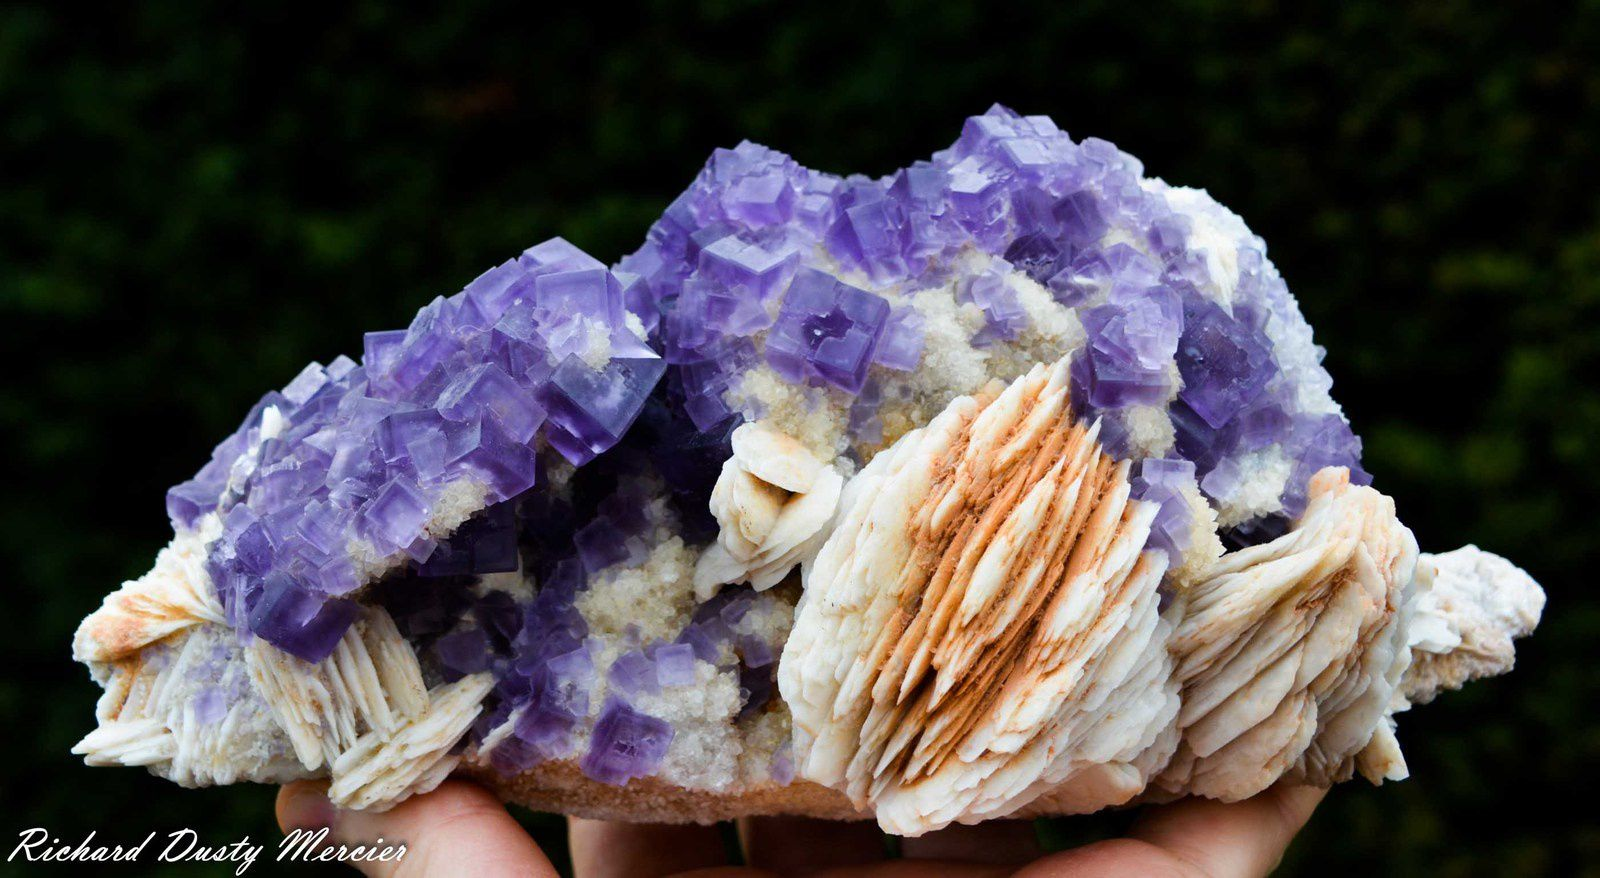 Fluorite with Barite from Berbes, Spain (Specimen and Photo: Richard Dusty Mercier)